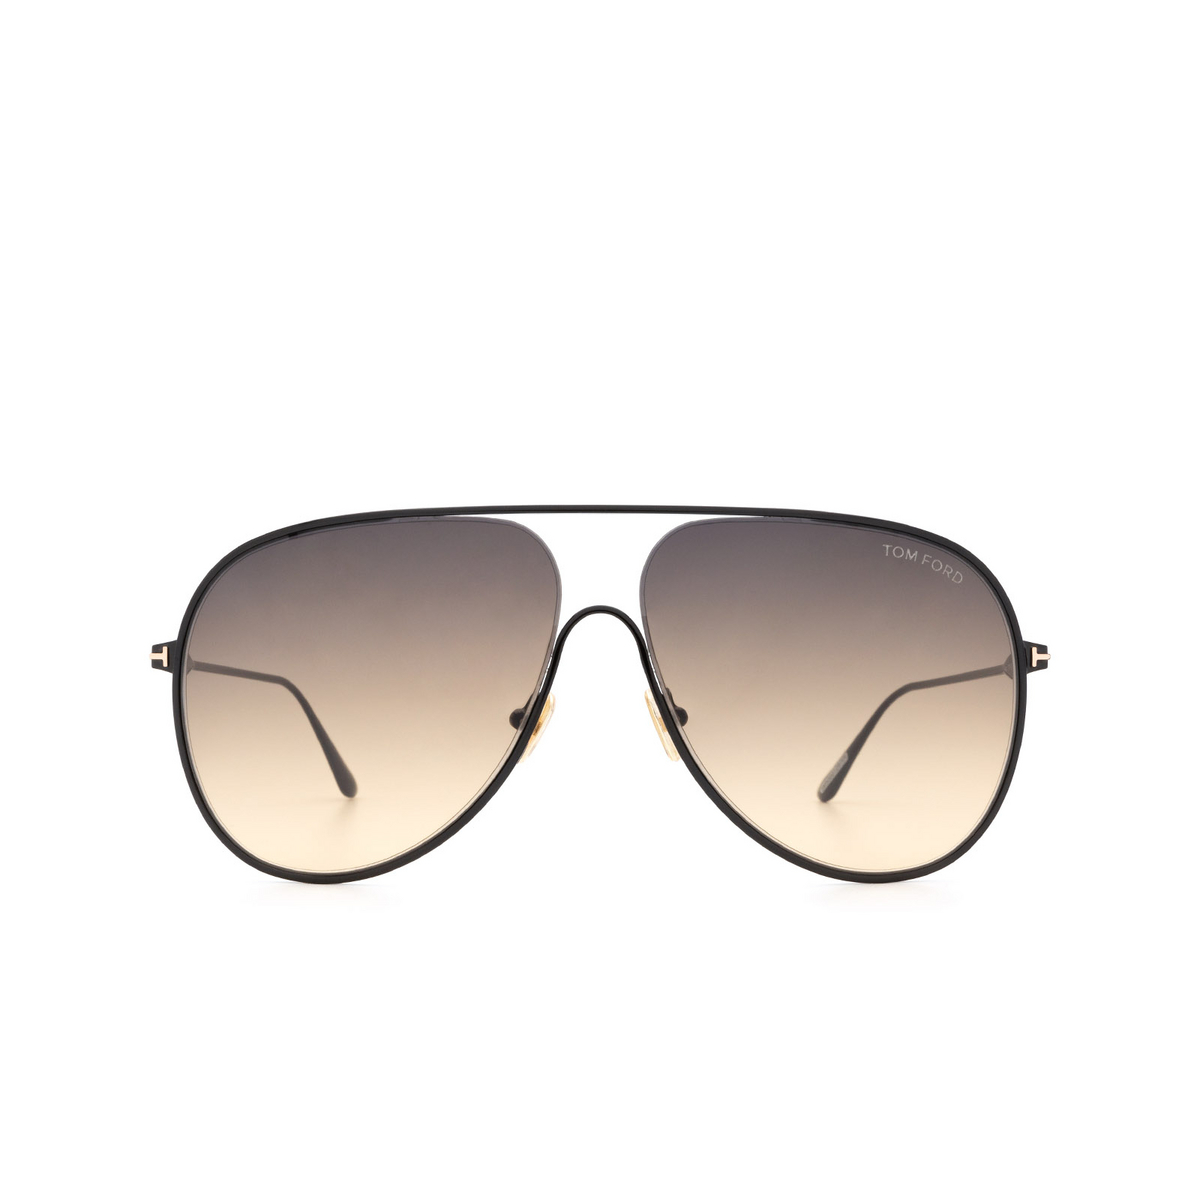 Tom Ford® Aviator Sunglasses: Alec FT0824 color Black 01B - front view.